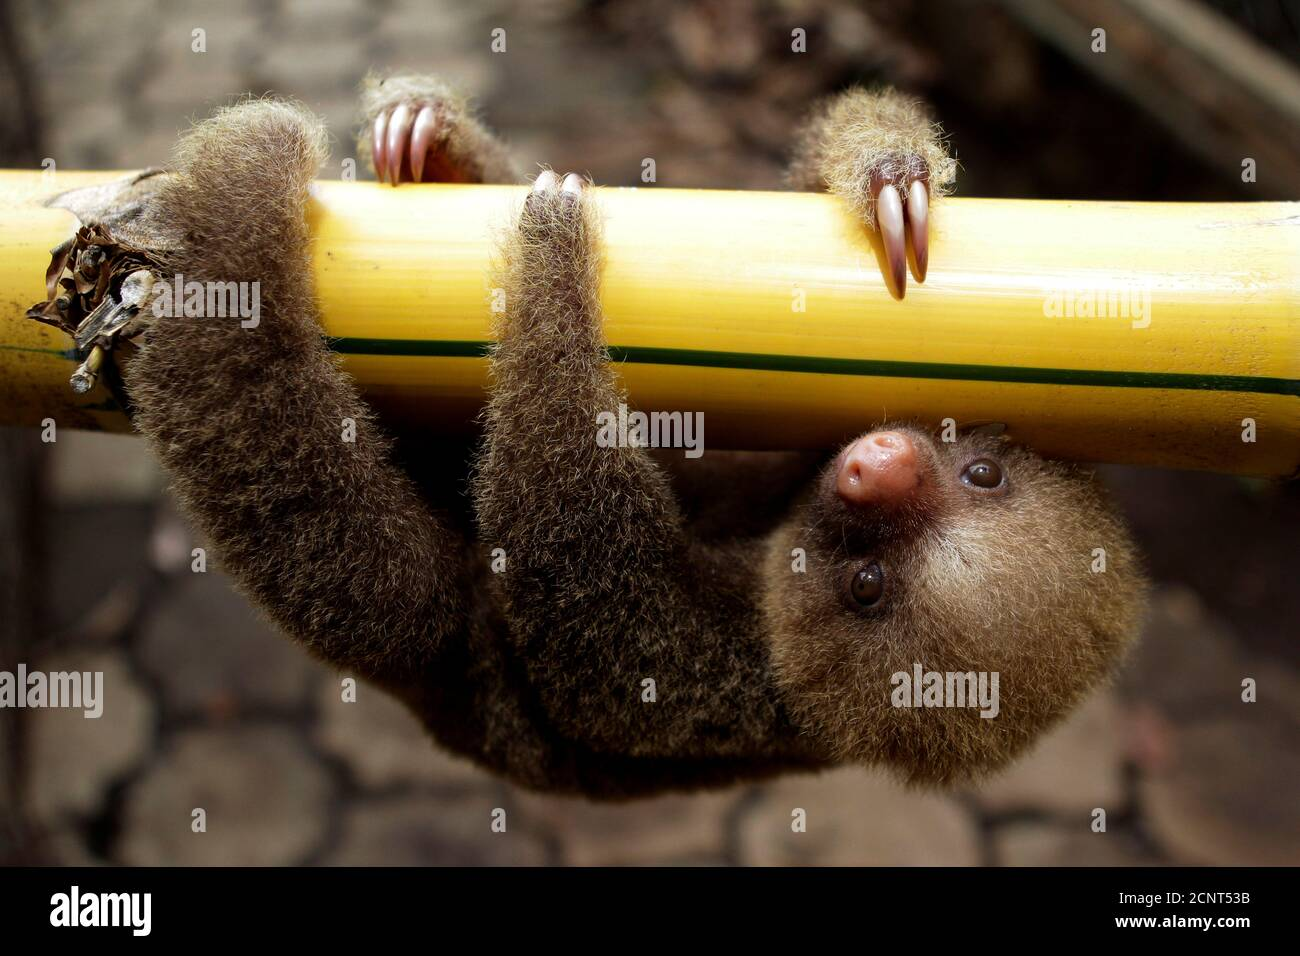 A Linnaeus two-toed sloth (Choloepus didactylus) is seen at a zoological park in Managua June 27, 2011. Nicaragua is hosting the first regional workshop of the Convention on International Trade in Endangered Species of Wild Fauna and Flora. REUTERS/Oswaldo Rivas (NICARAGUA - Tags: ANIMALS ENVIRONMENT SOCIETY IMAGES OF THE DAY) Foto de stock